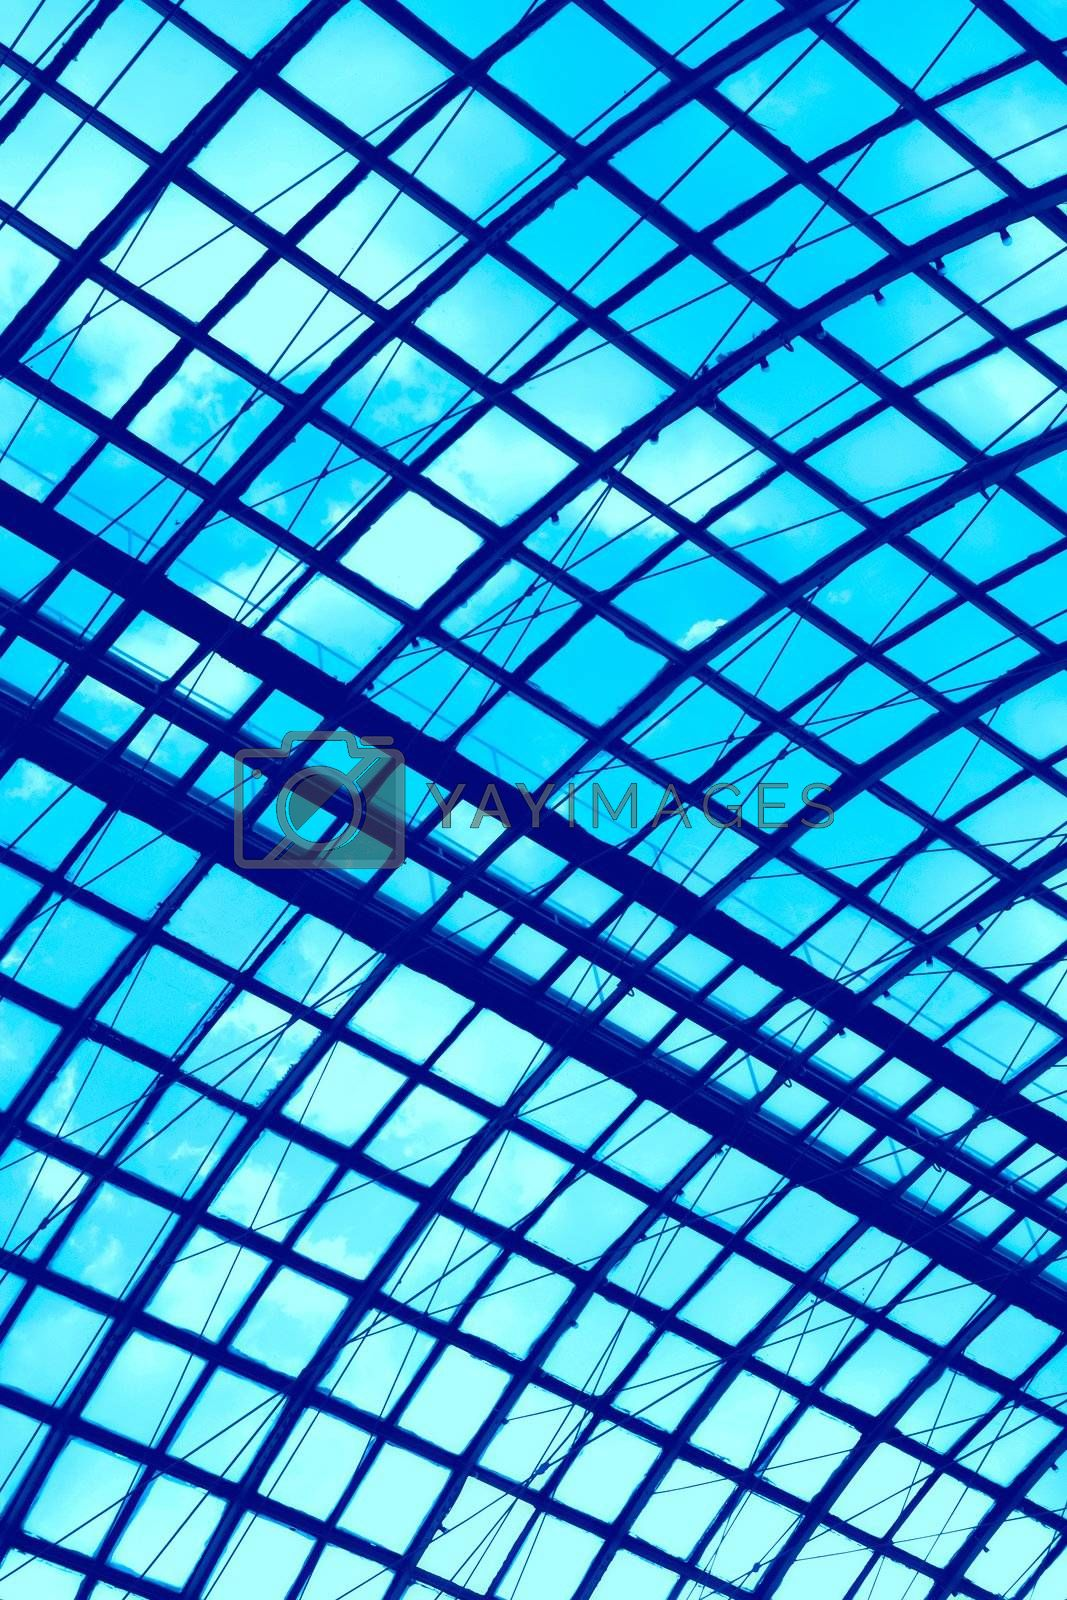 Royalty free image of pattern of the glass ceiling by Astroid